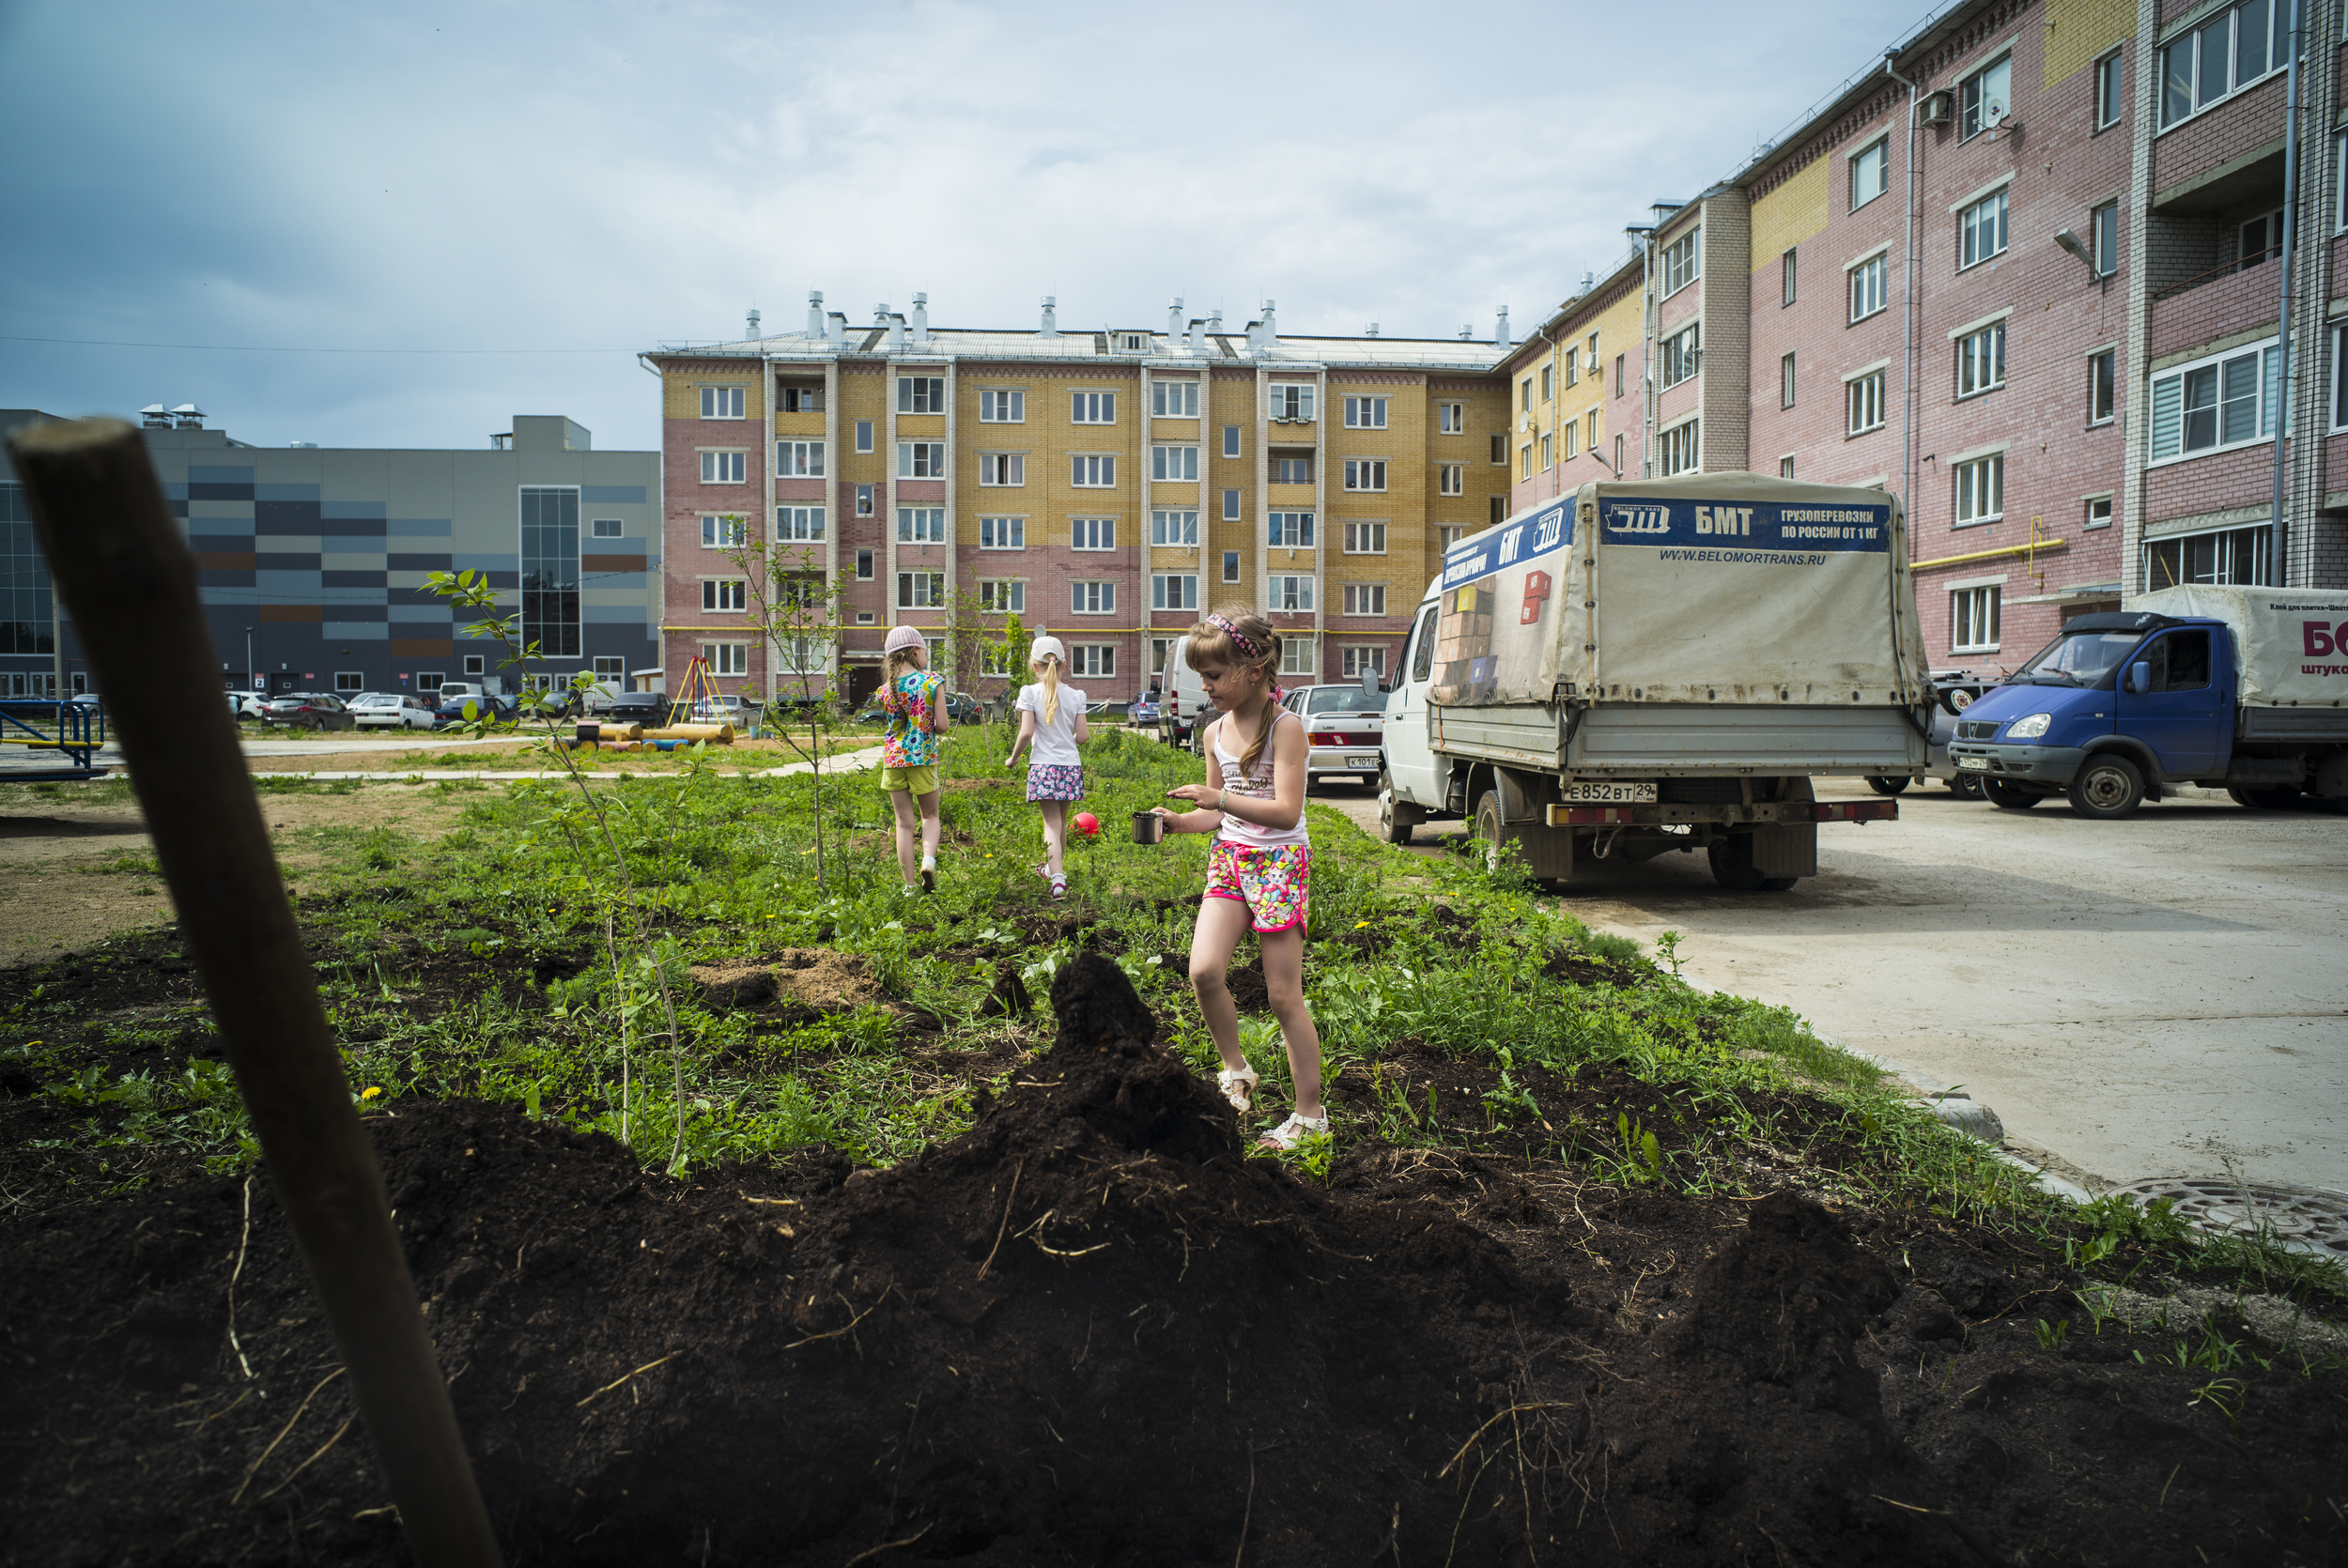 Roots grow beneath three girls at play on May 30, 2015 in the town of Kotlas in Arkhangelsk Oblast, Russia. (© Alicia Afshar)